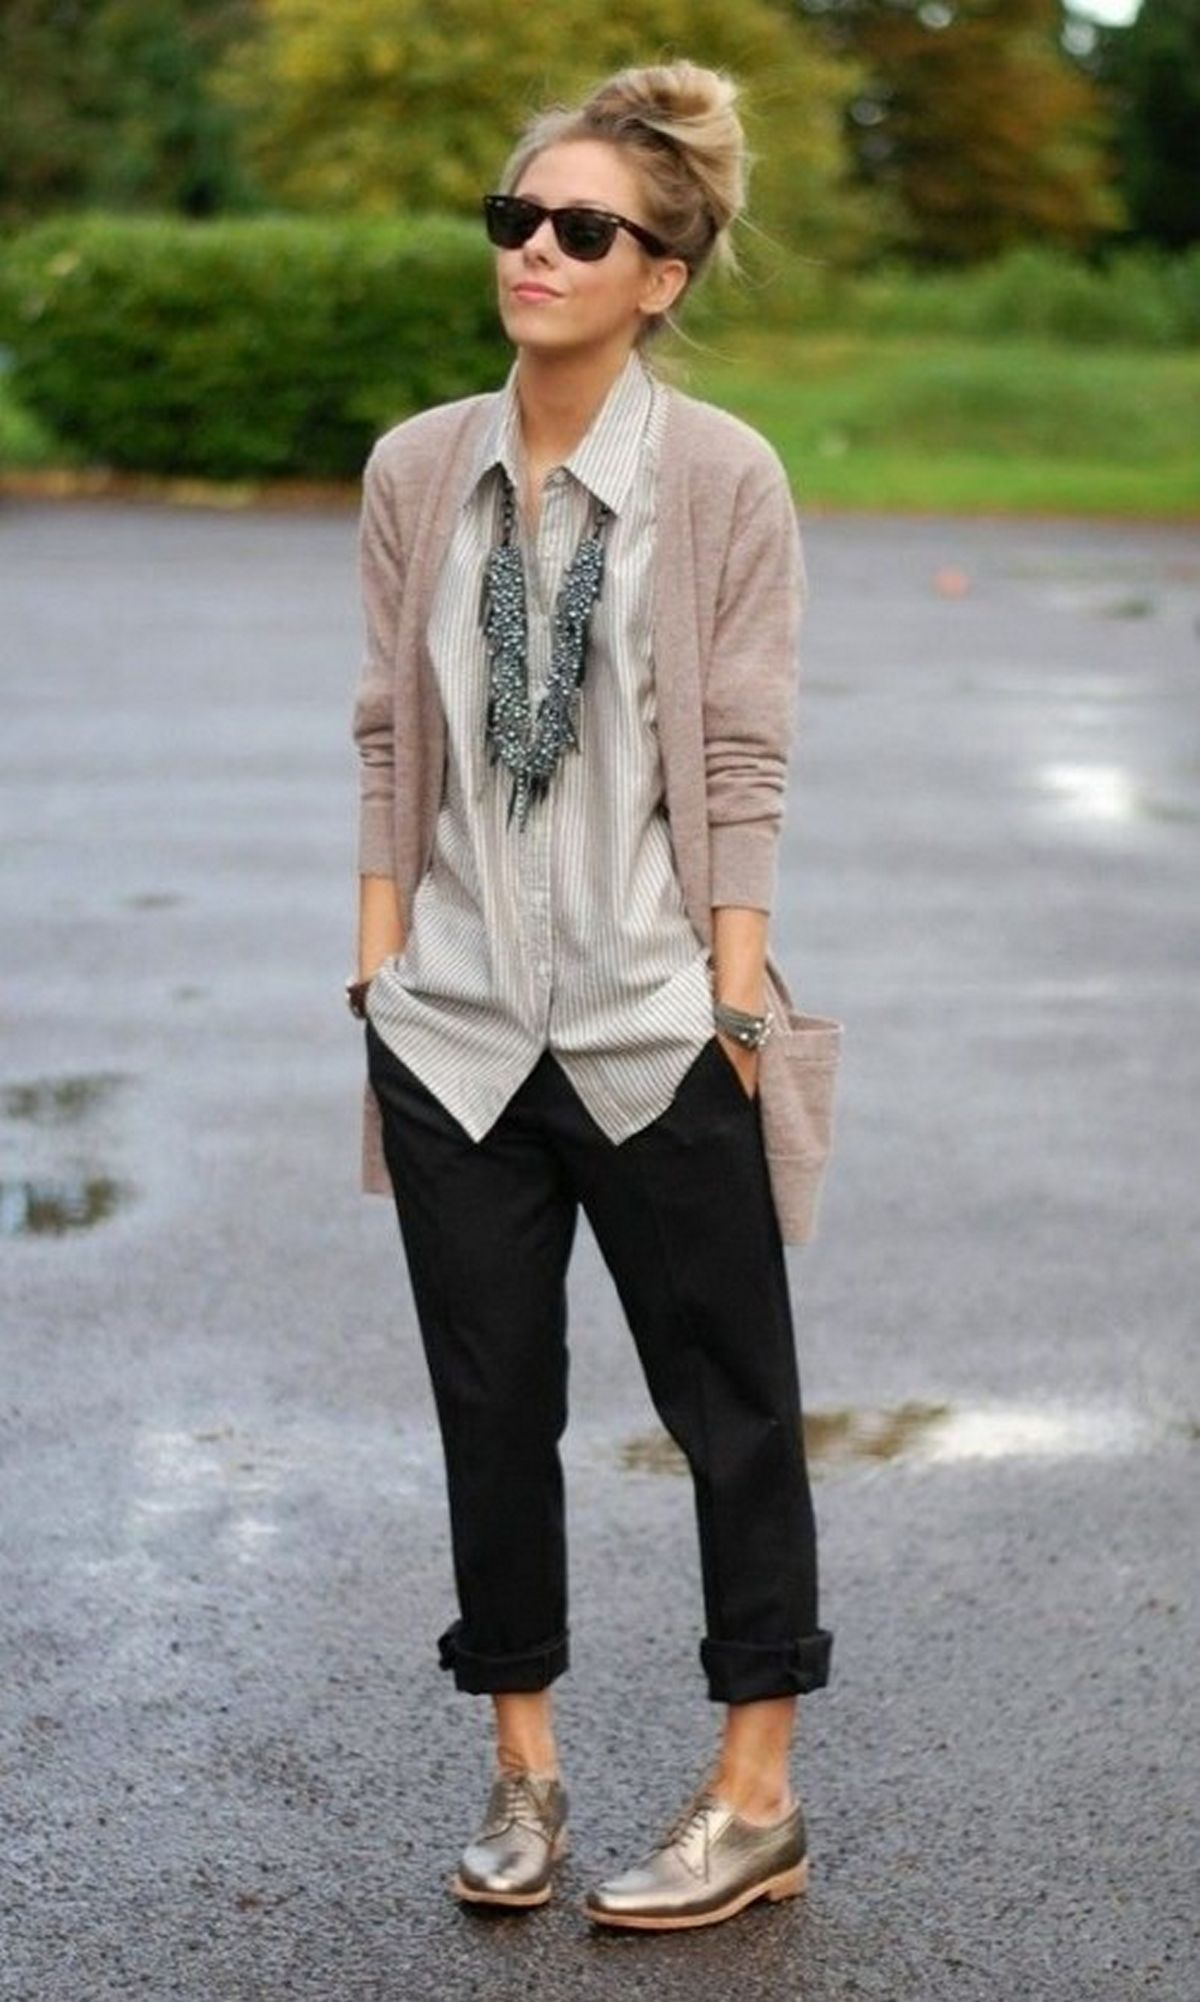 If femenine is not your style, these outfits are what you were looking for (07)